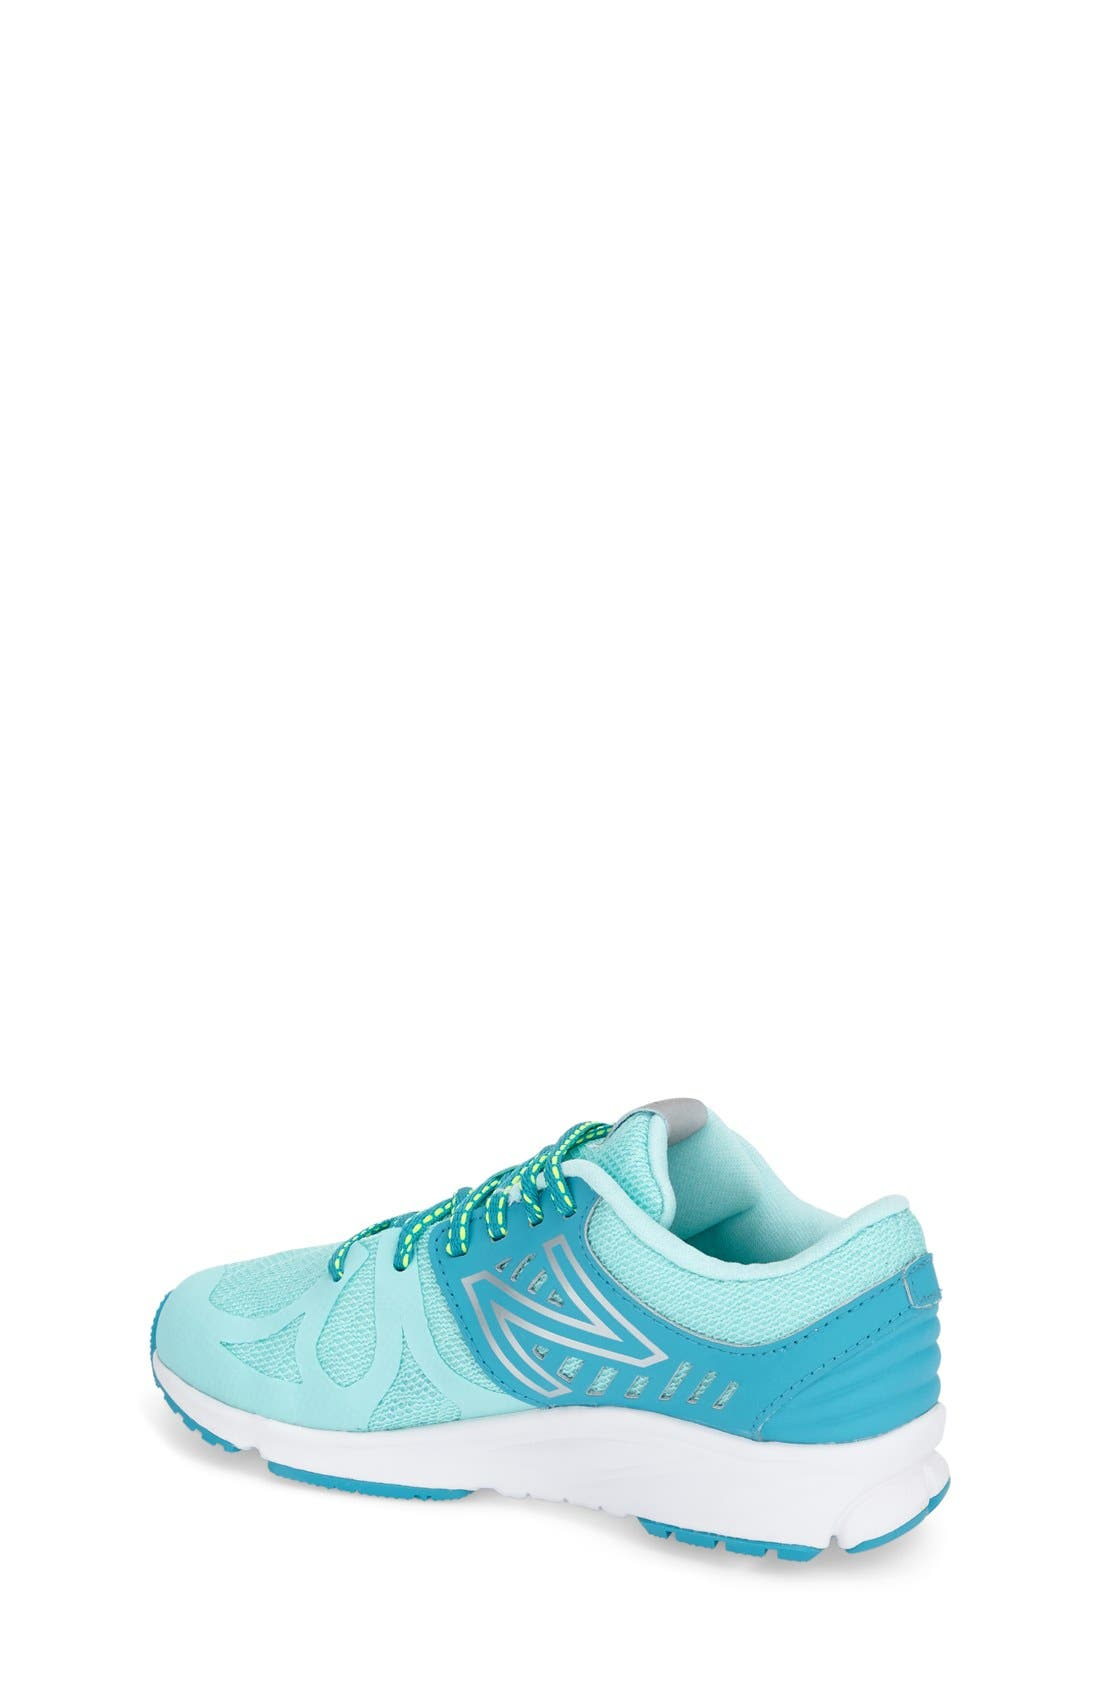 '200 Rush Vazee' Athletic Shoe,                             Alternate thumbnail 2, color,                             SEA GLASS